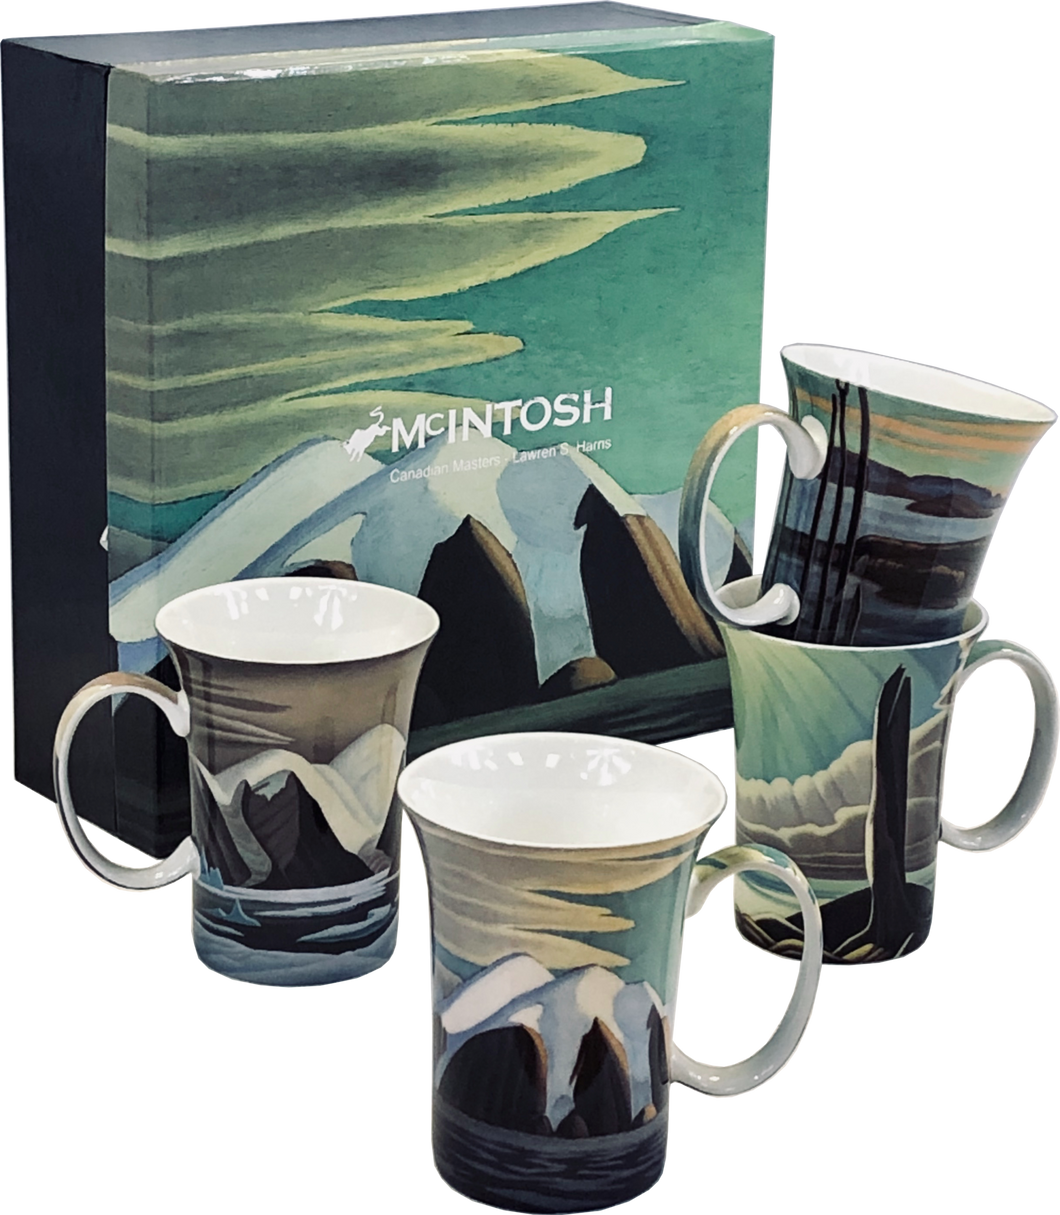 Lawren S. Harris Set of Four Mugs